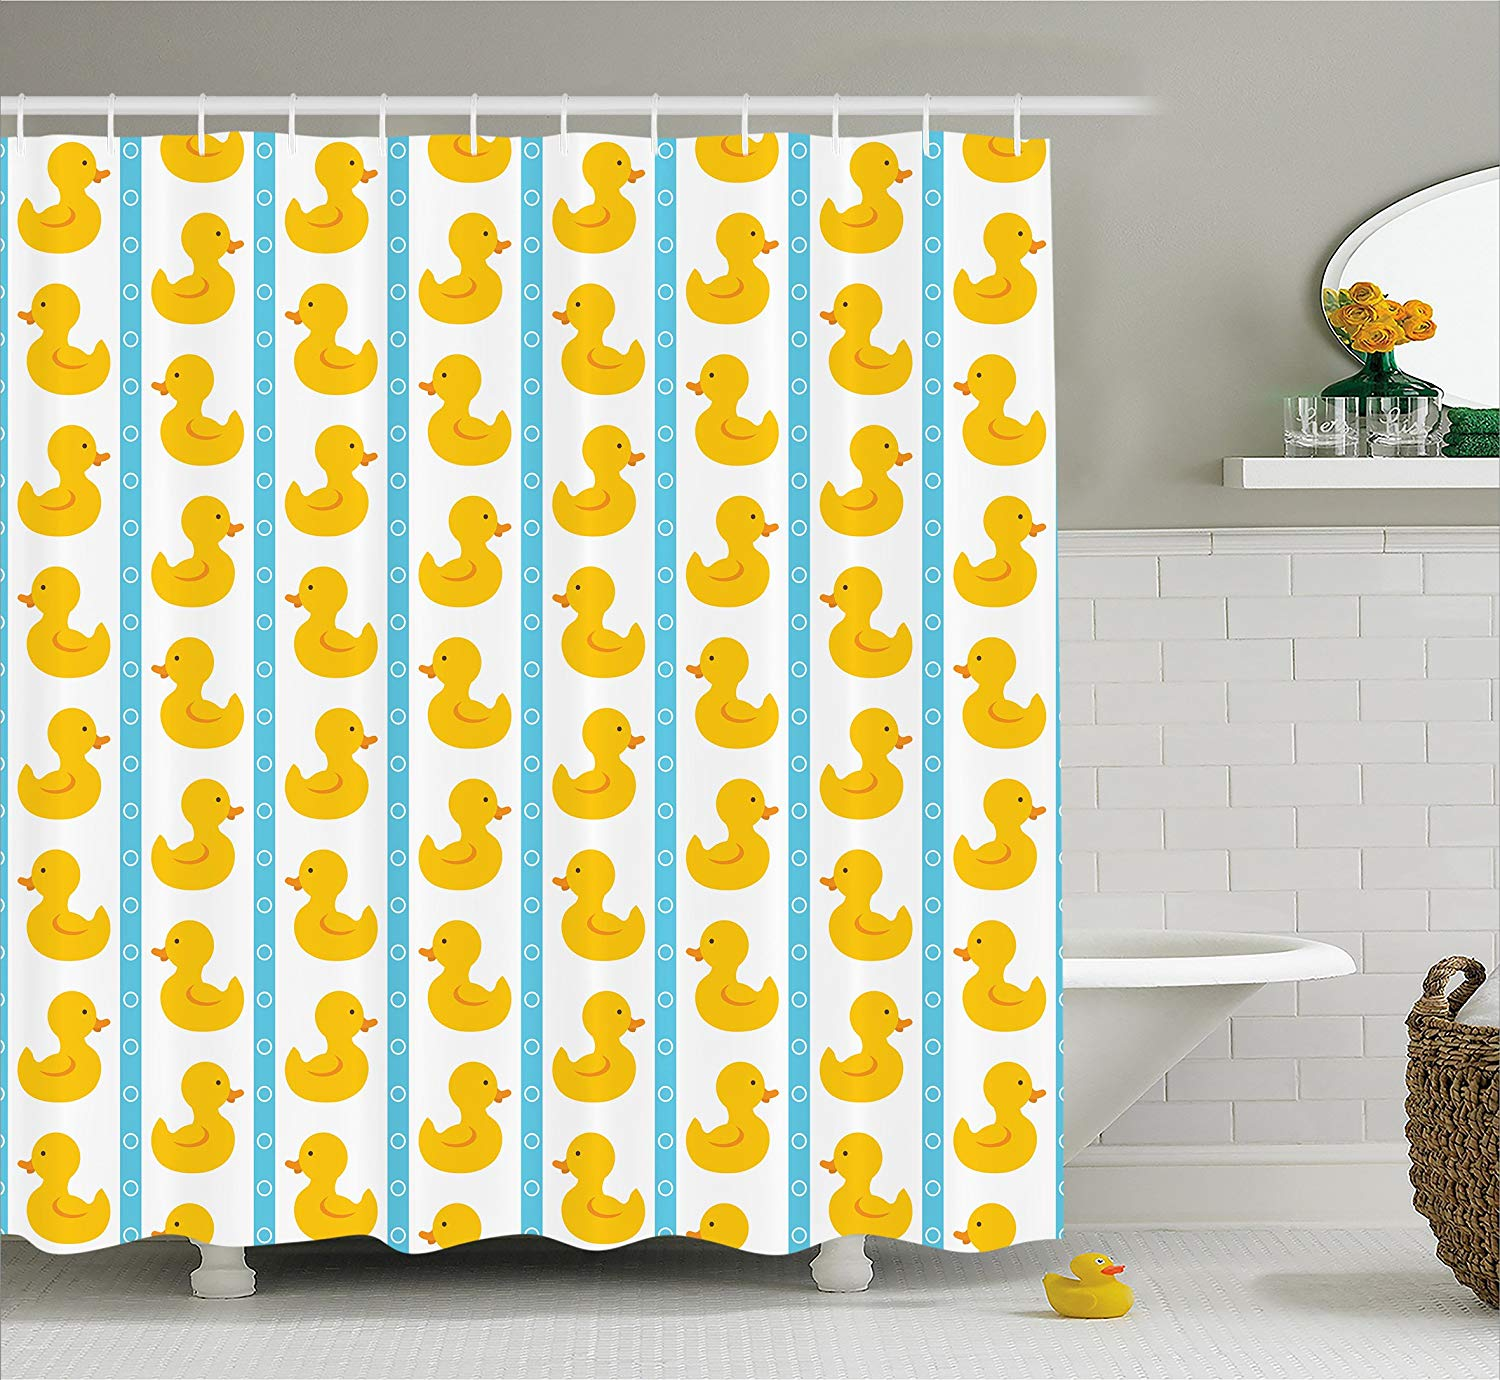 Us 12 8 30 Off Rubber Duck Shower Curtain Yellow Duckies With Blue Stripes Baby Nursery Play Toys Pattern Fabric Bathroom Set Hooks In